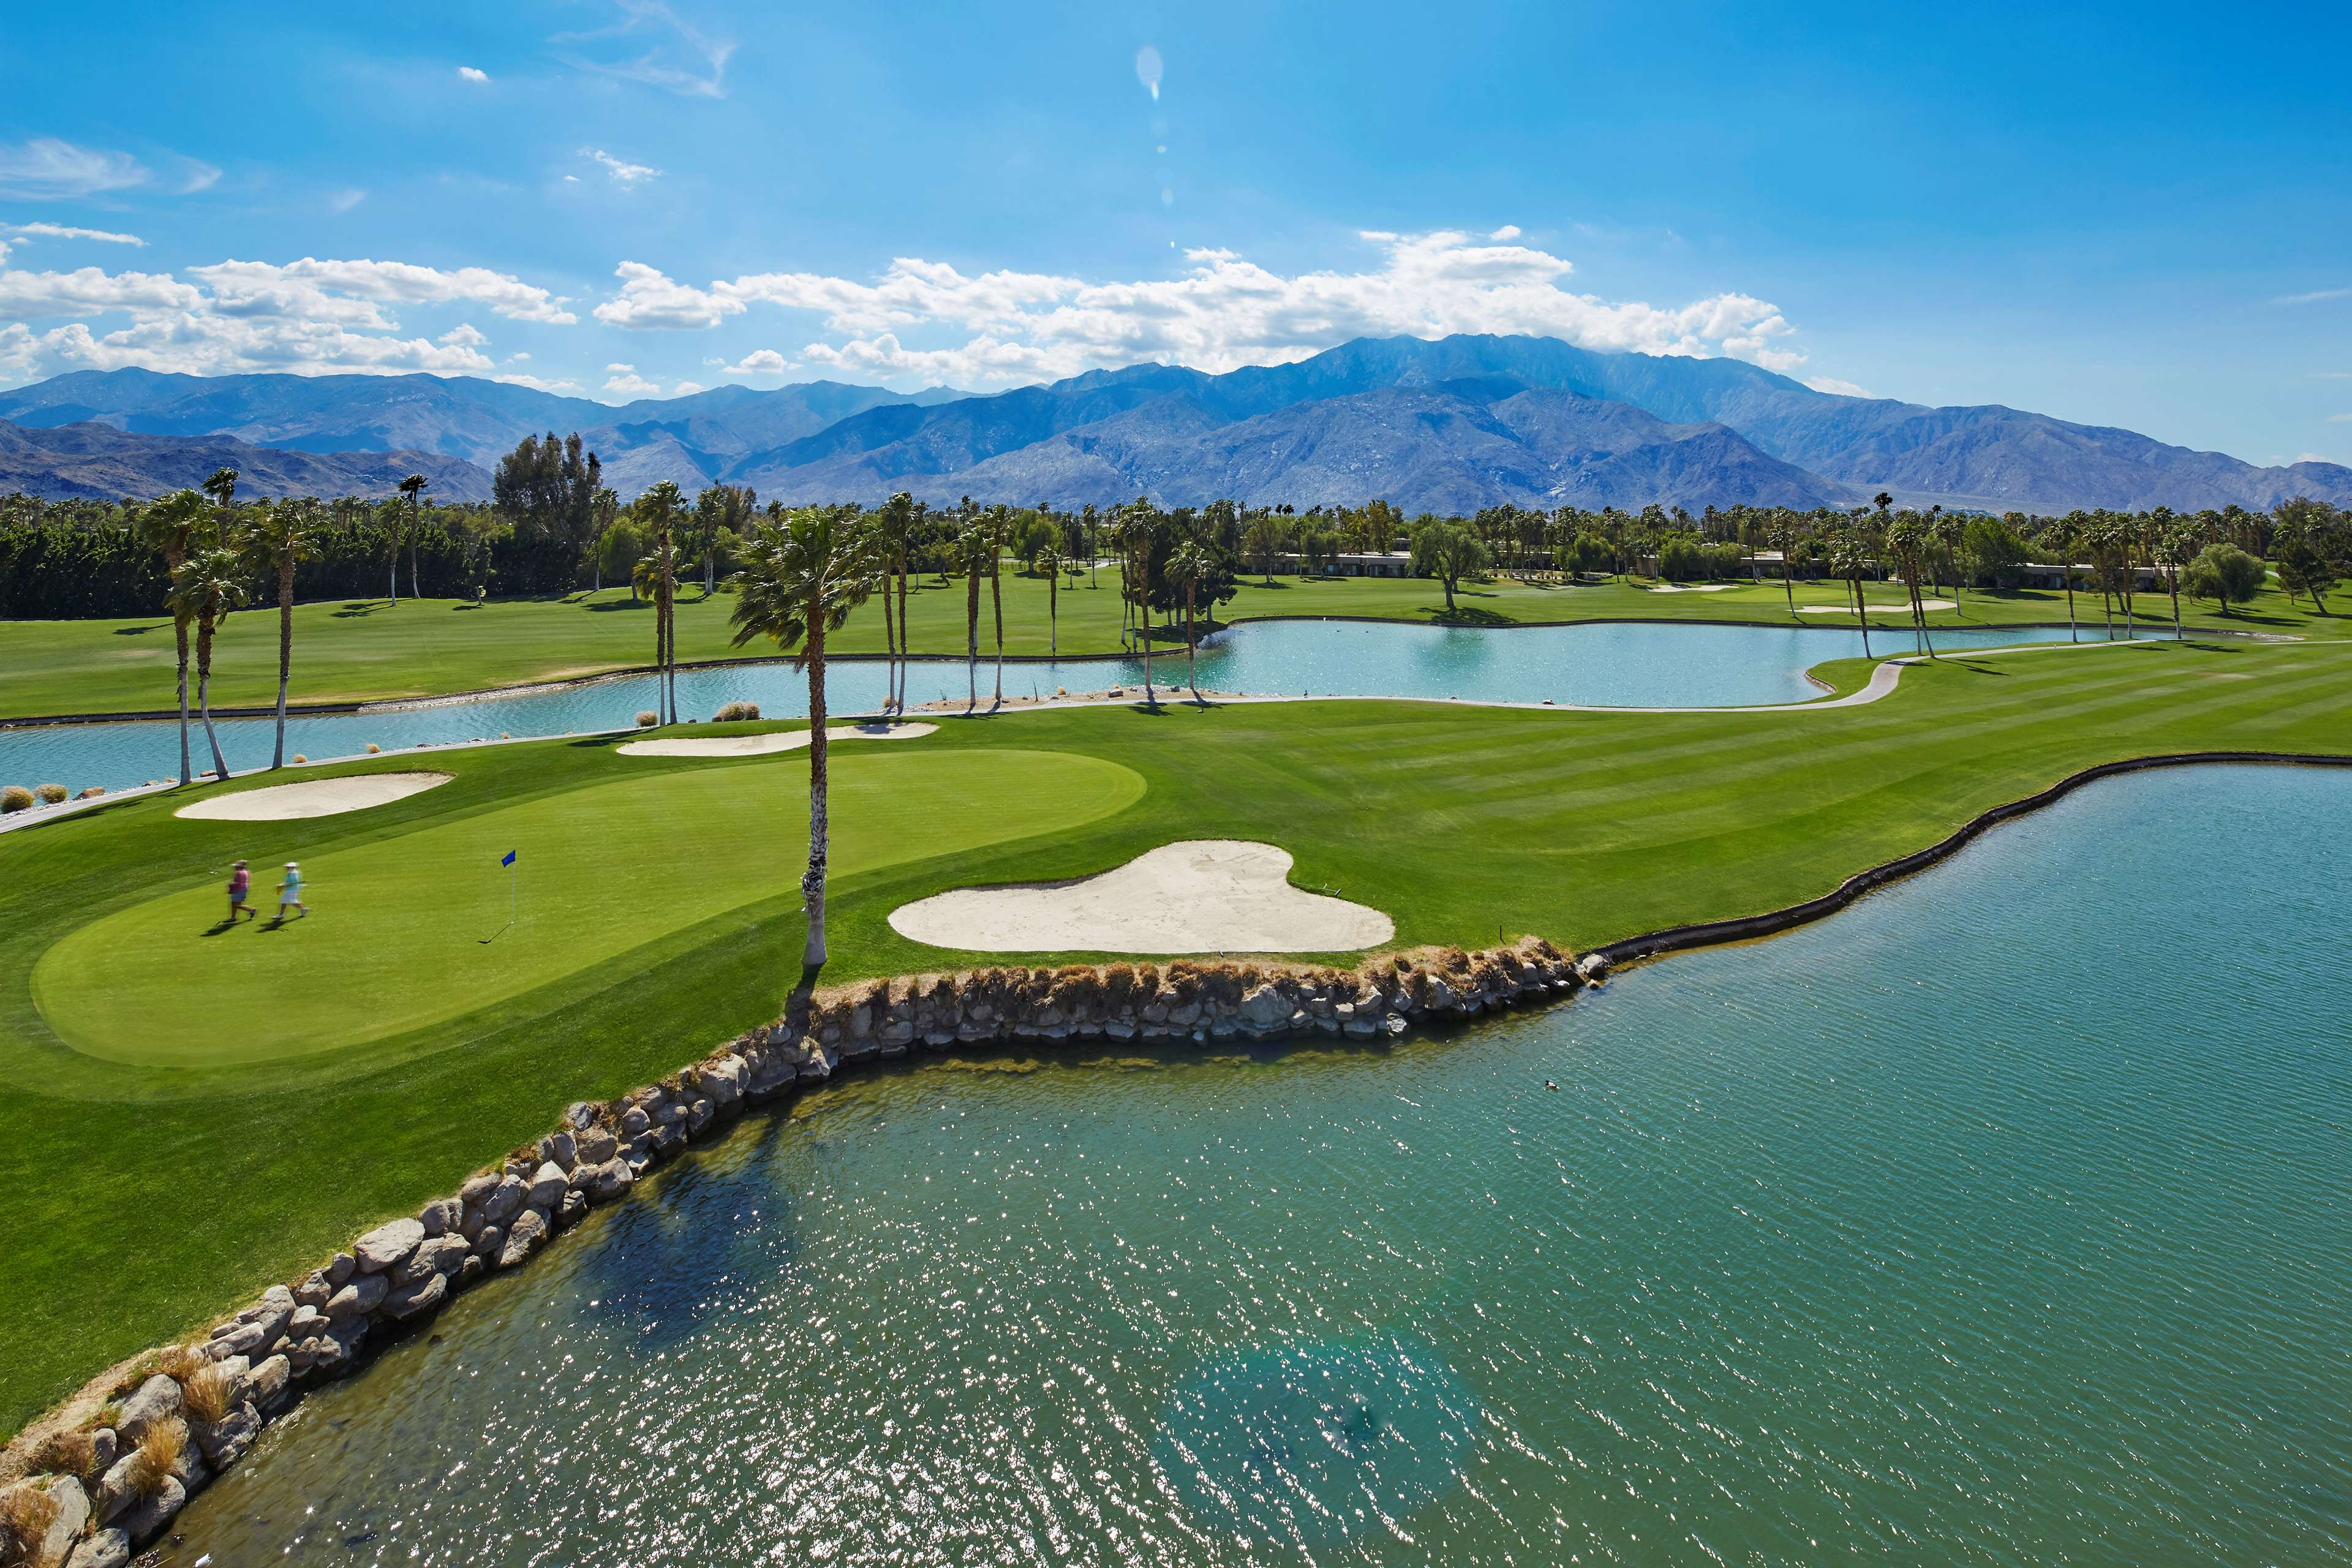 DoubleTree by Hilton Hotel Golf Resort Palm Springs image 33